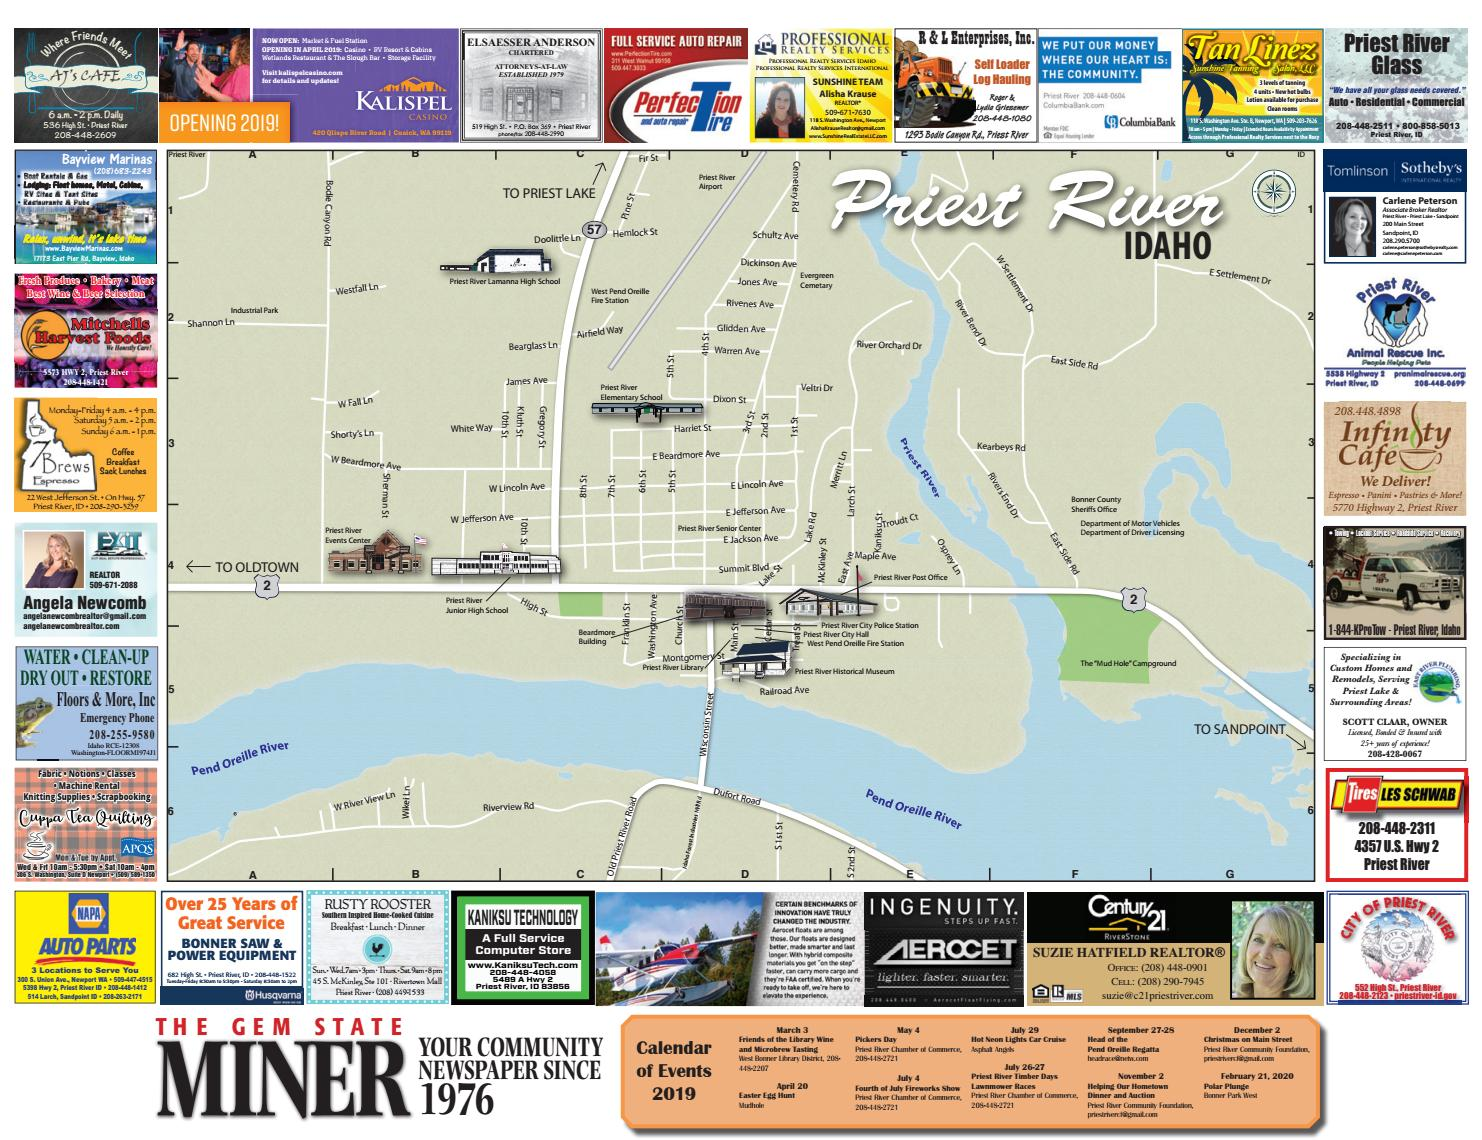 priest river idaho map 2019 Priest River Map By The Newport Miner Issuu priest river idaho map